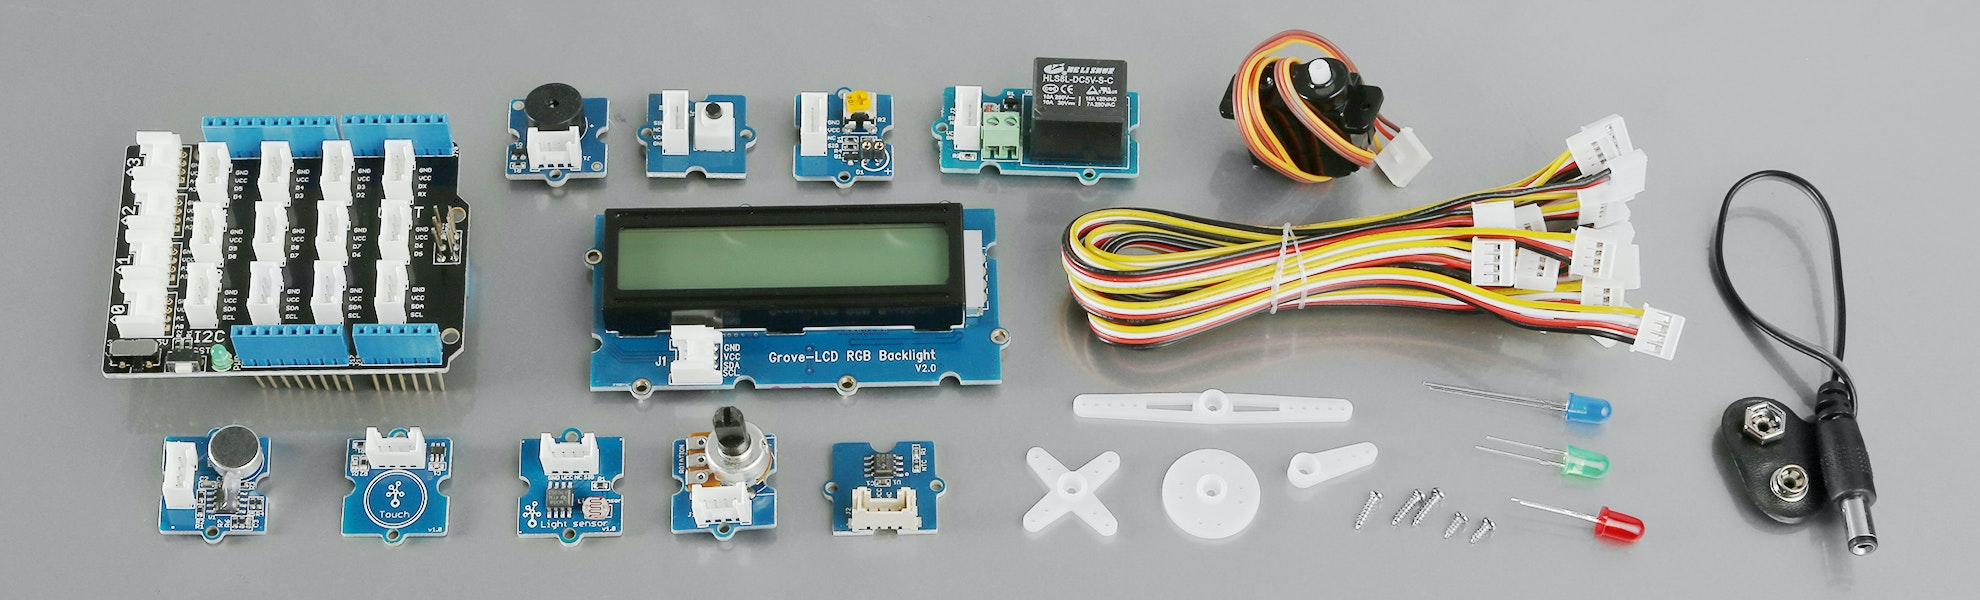 Seeed Grove - Starter Kit for Arduino